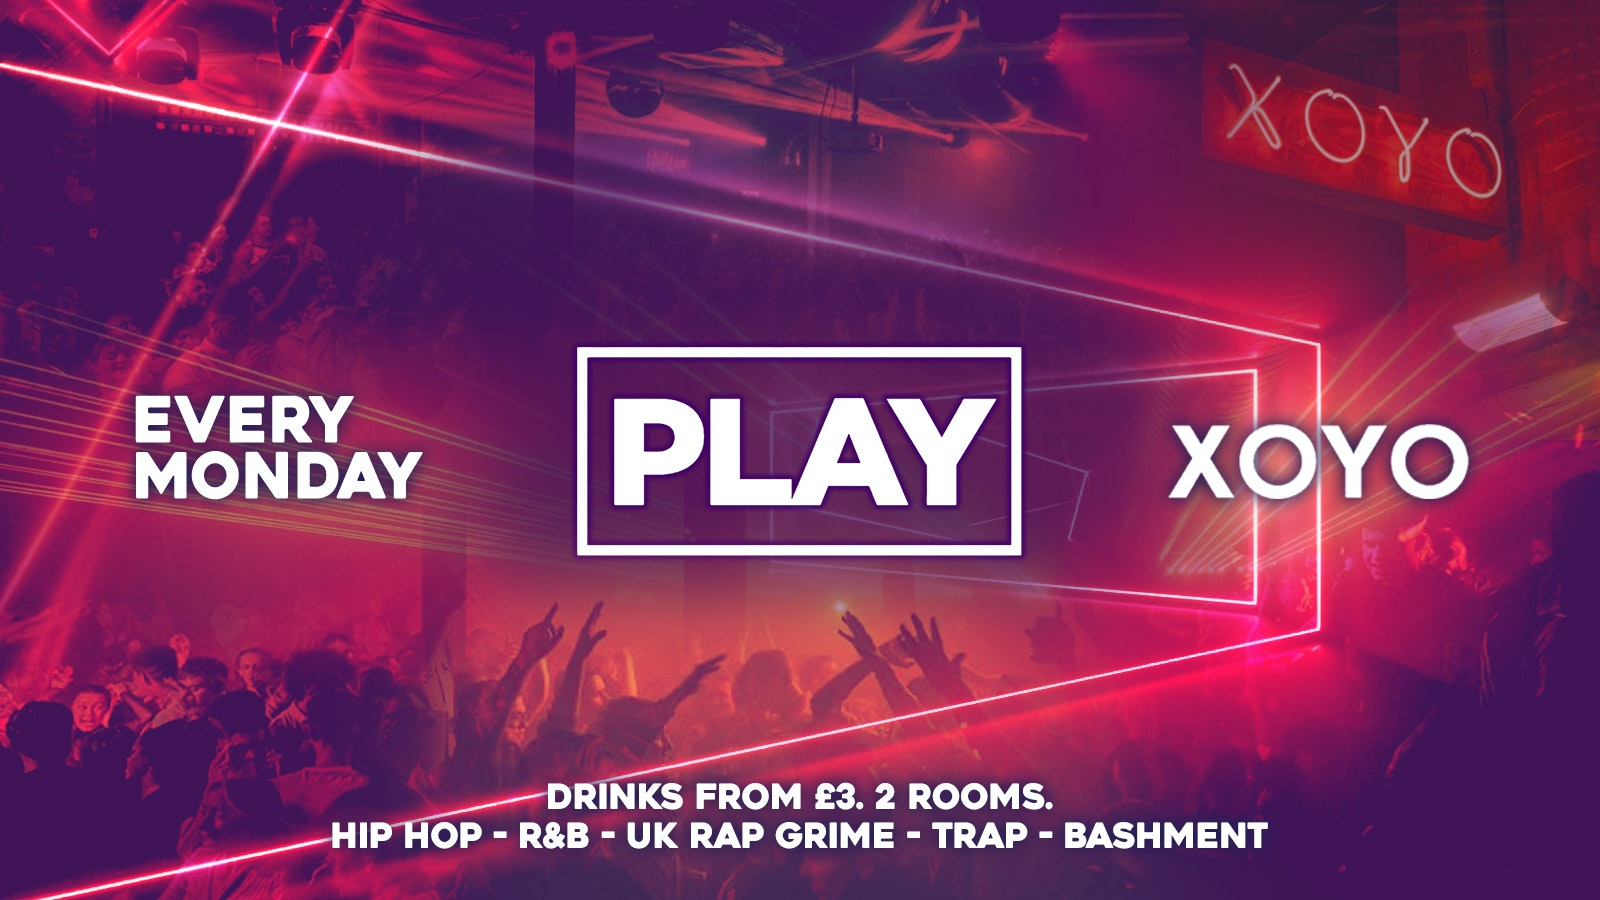 Play London is BACK! Launch Night on June 21st – The Biggest Weekly Monday Student Night in London // SOLD OUT!!! Get your tickets for June 28th NOW!